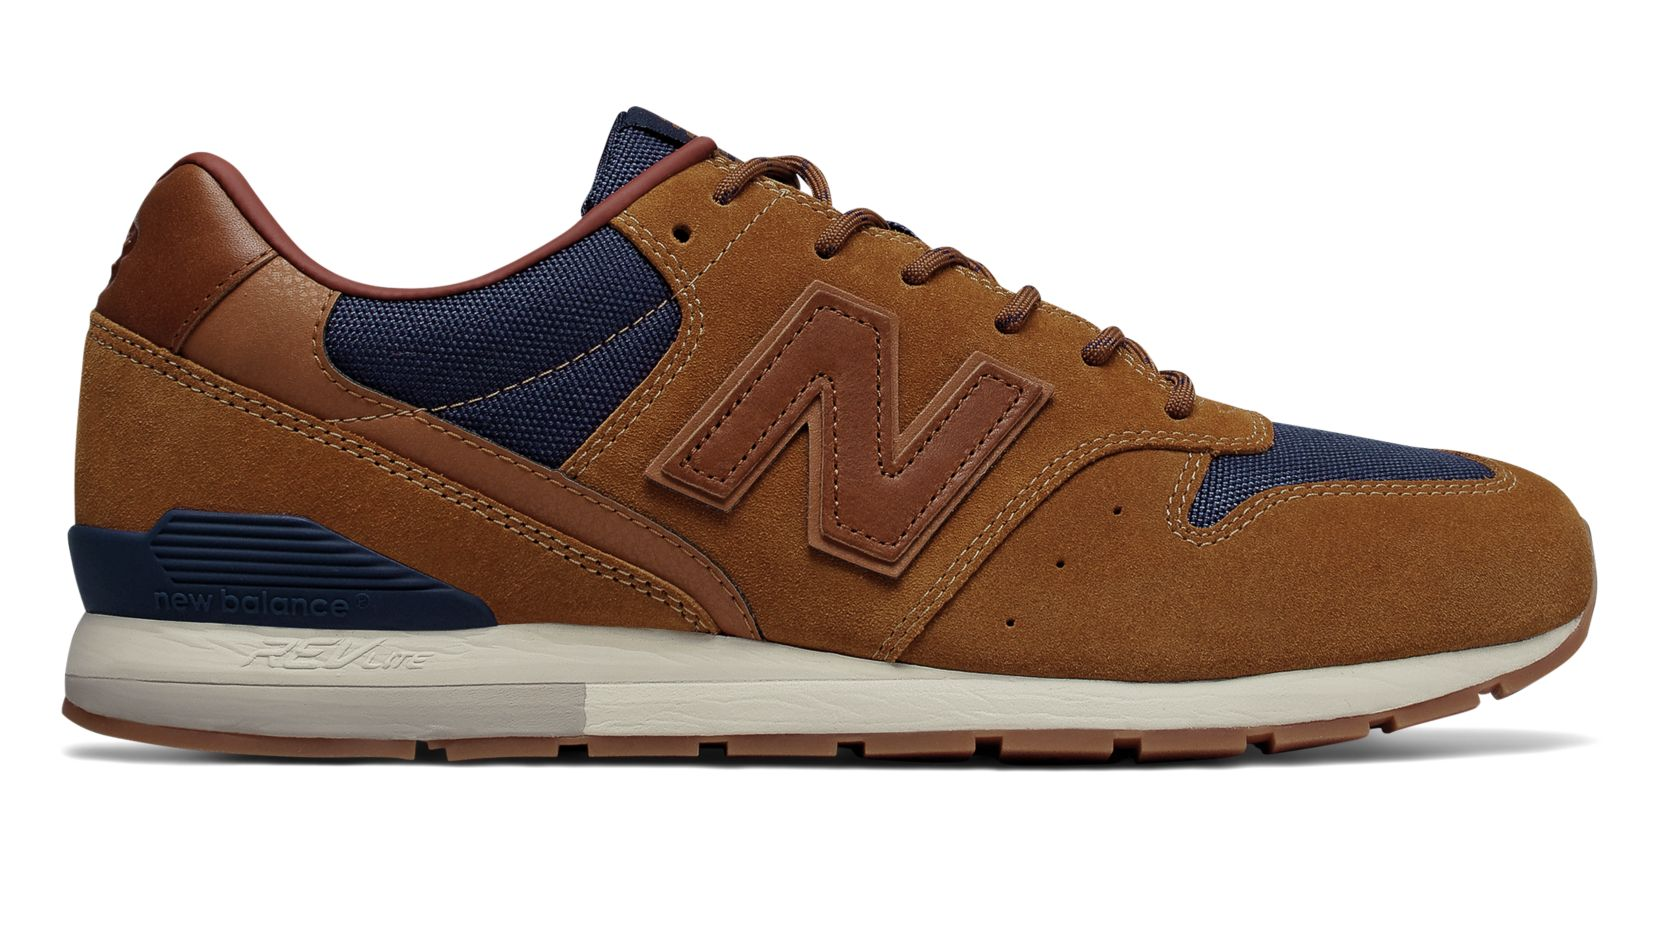 Men's 996 Classic Lifestyle Shoes | New Balance